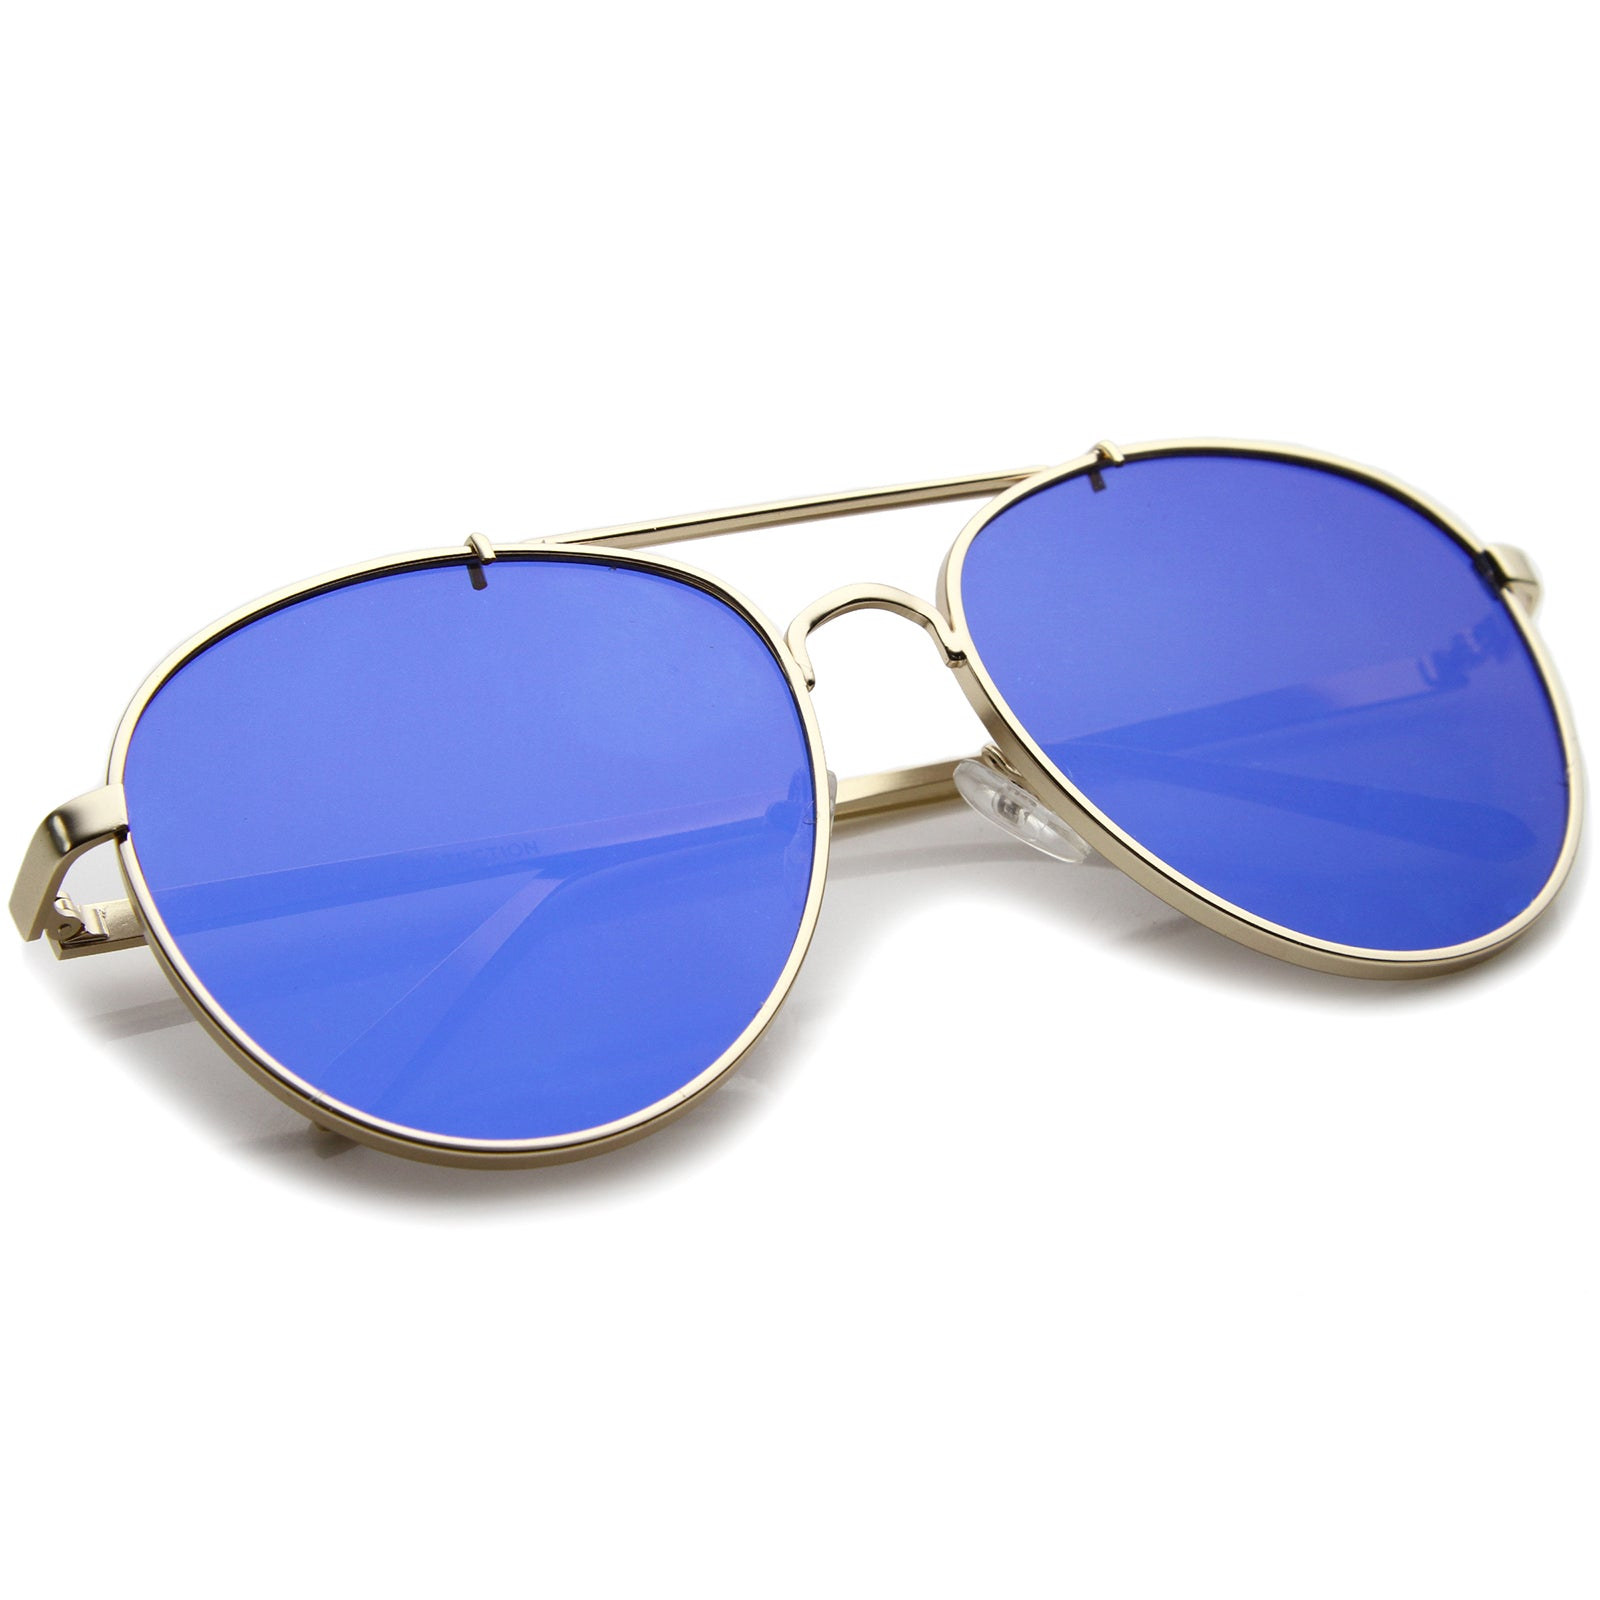 Large Metal Teardrop Double Bridge Mirrored Flat Lens Aviator Sunglasses 60mm - sunglass.la - 20